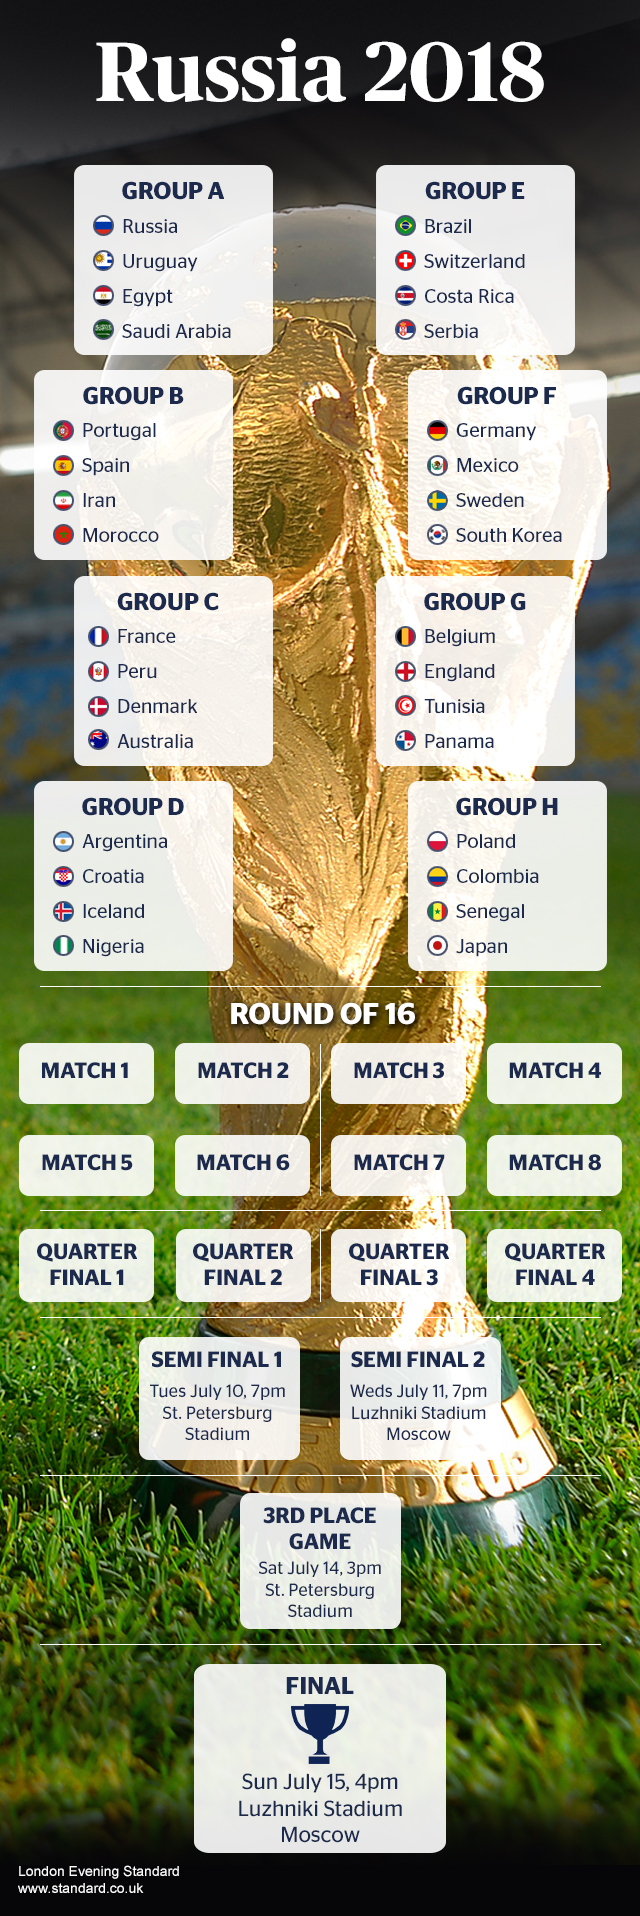 FIFA World Cup 2018 fixtures: Matches, dates, groups and